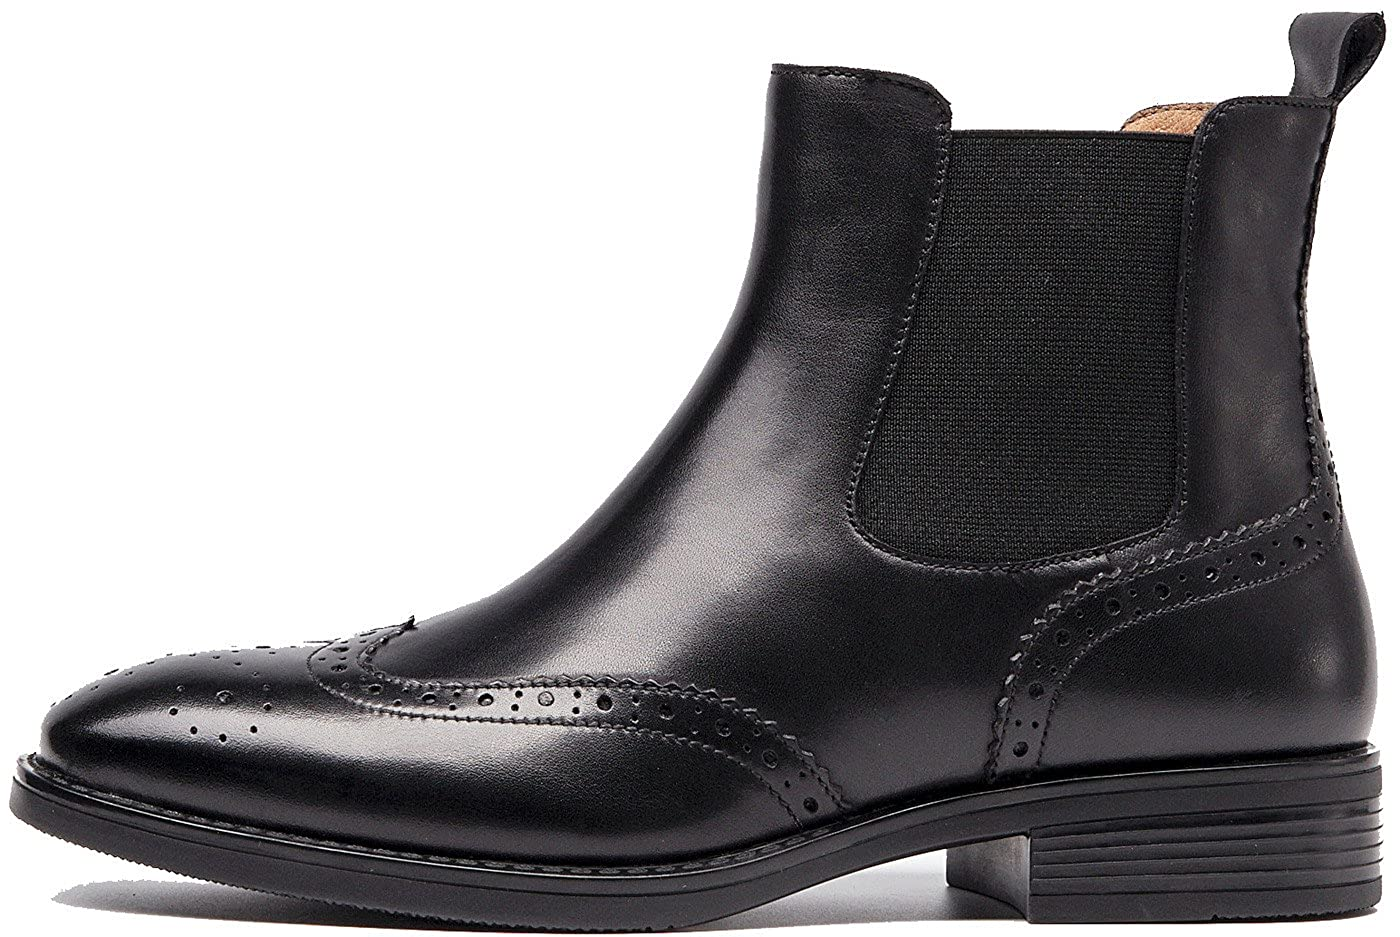 0bc51976cd0 U-lite Womens Fall Winter Wing-tip Comfortable Brogue Leather Chelsea Ankle  Boots Women Booties